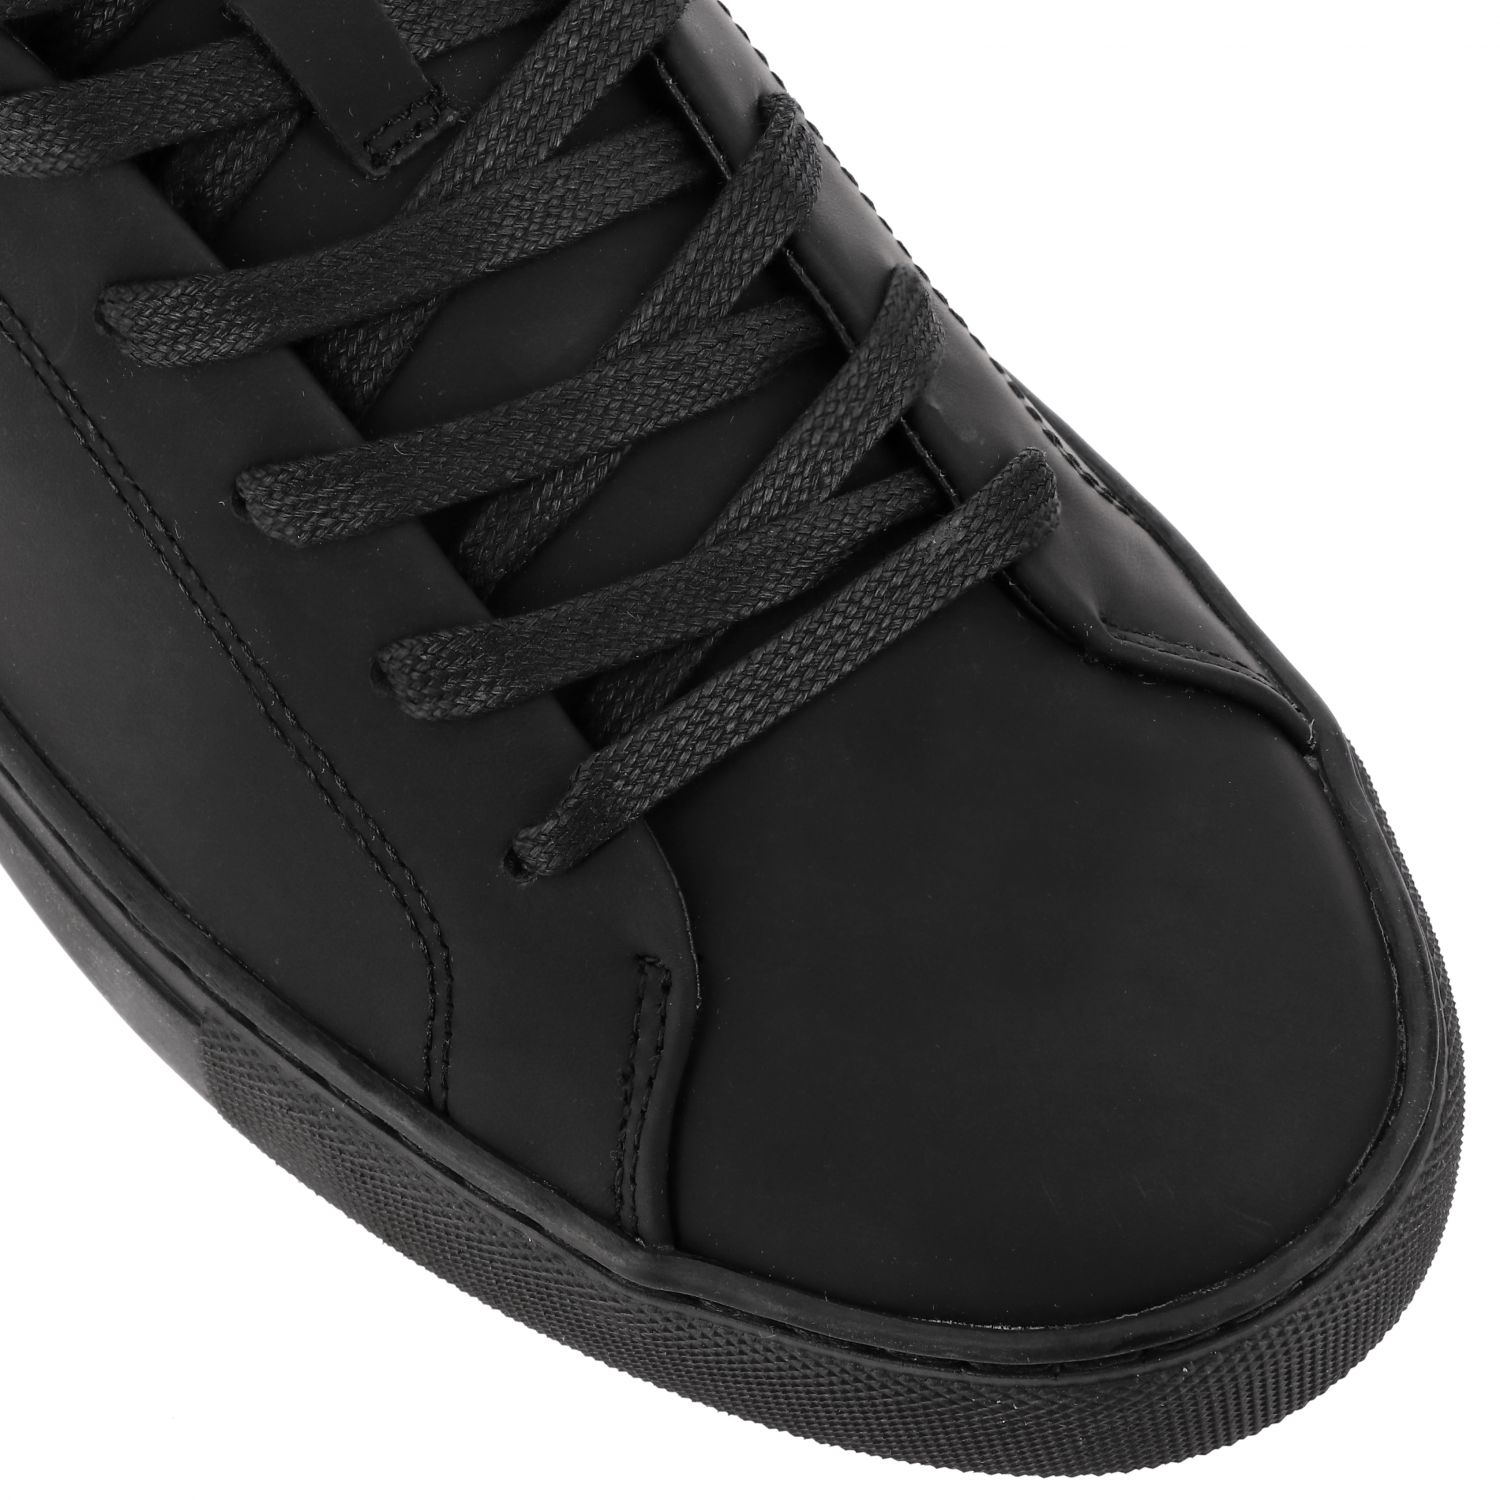 Sneakers Crime London: Shoes men Crime London black 4